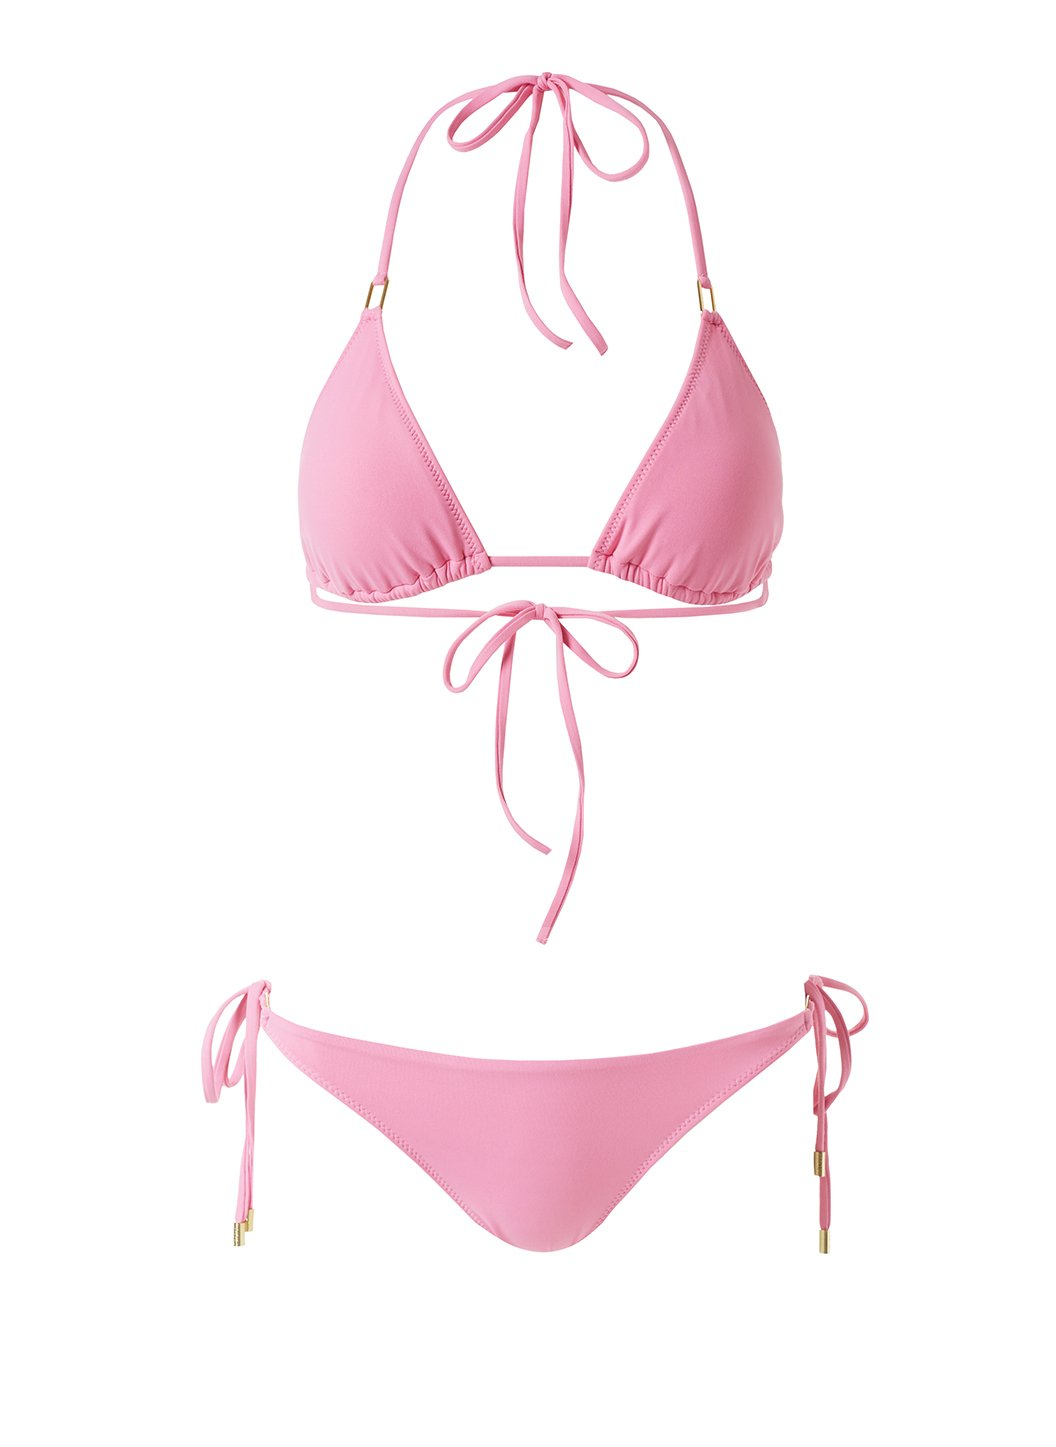 Exclusive Cancun Rose Bikini